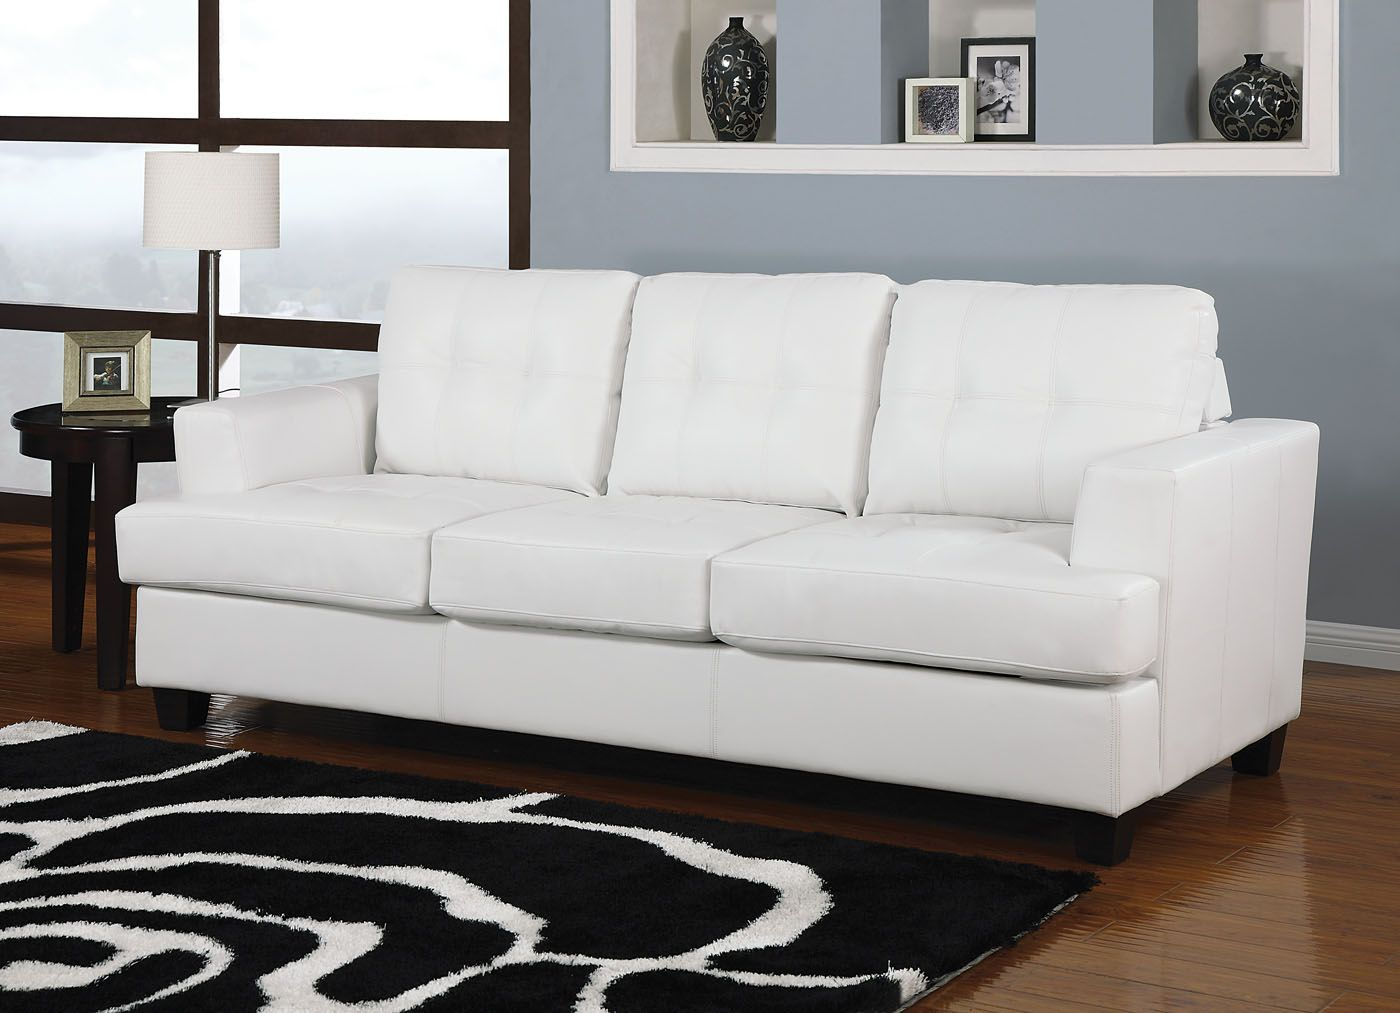 Excellent Acme Diamond Bonded Leather Sofa Sleeper In White 15062 Dailytribune Chair Design For Home Dailytribuneorg